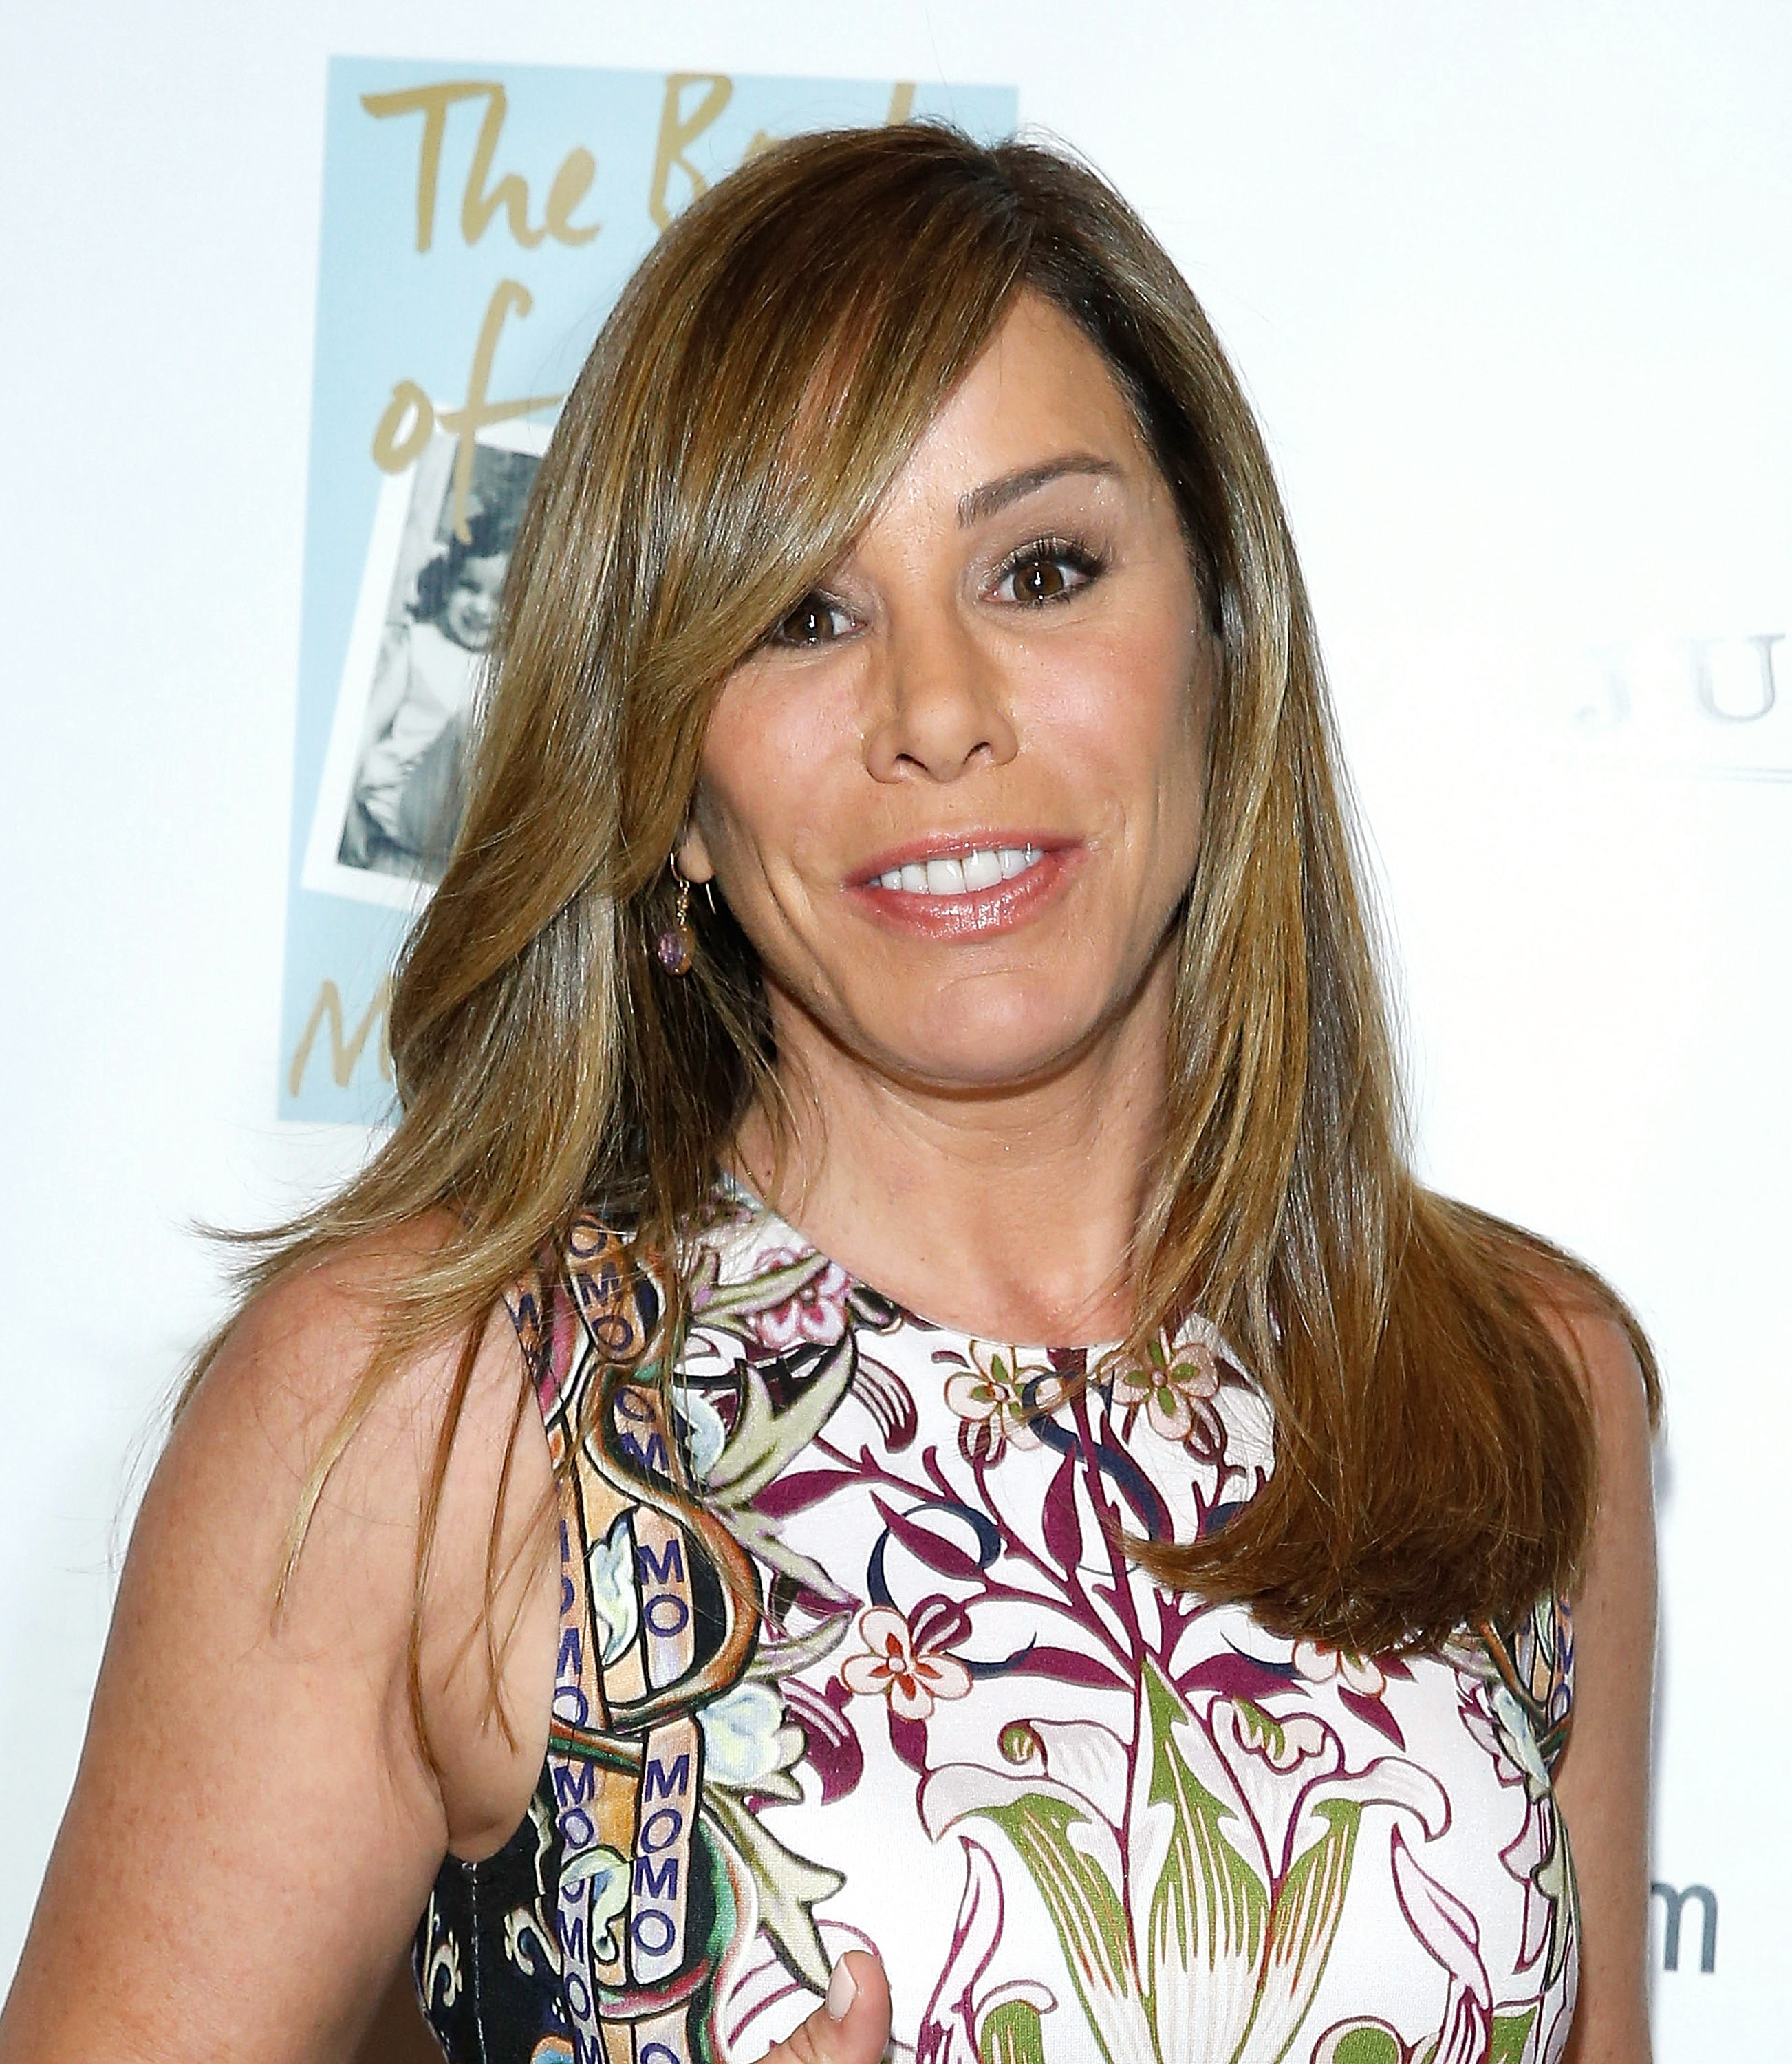 Melissa Rivers attends Mamarazzi event with Melissa Rivers at Juniper Bar on May 13, 2015 in New York City.